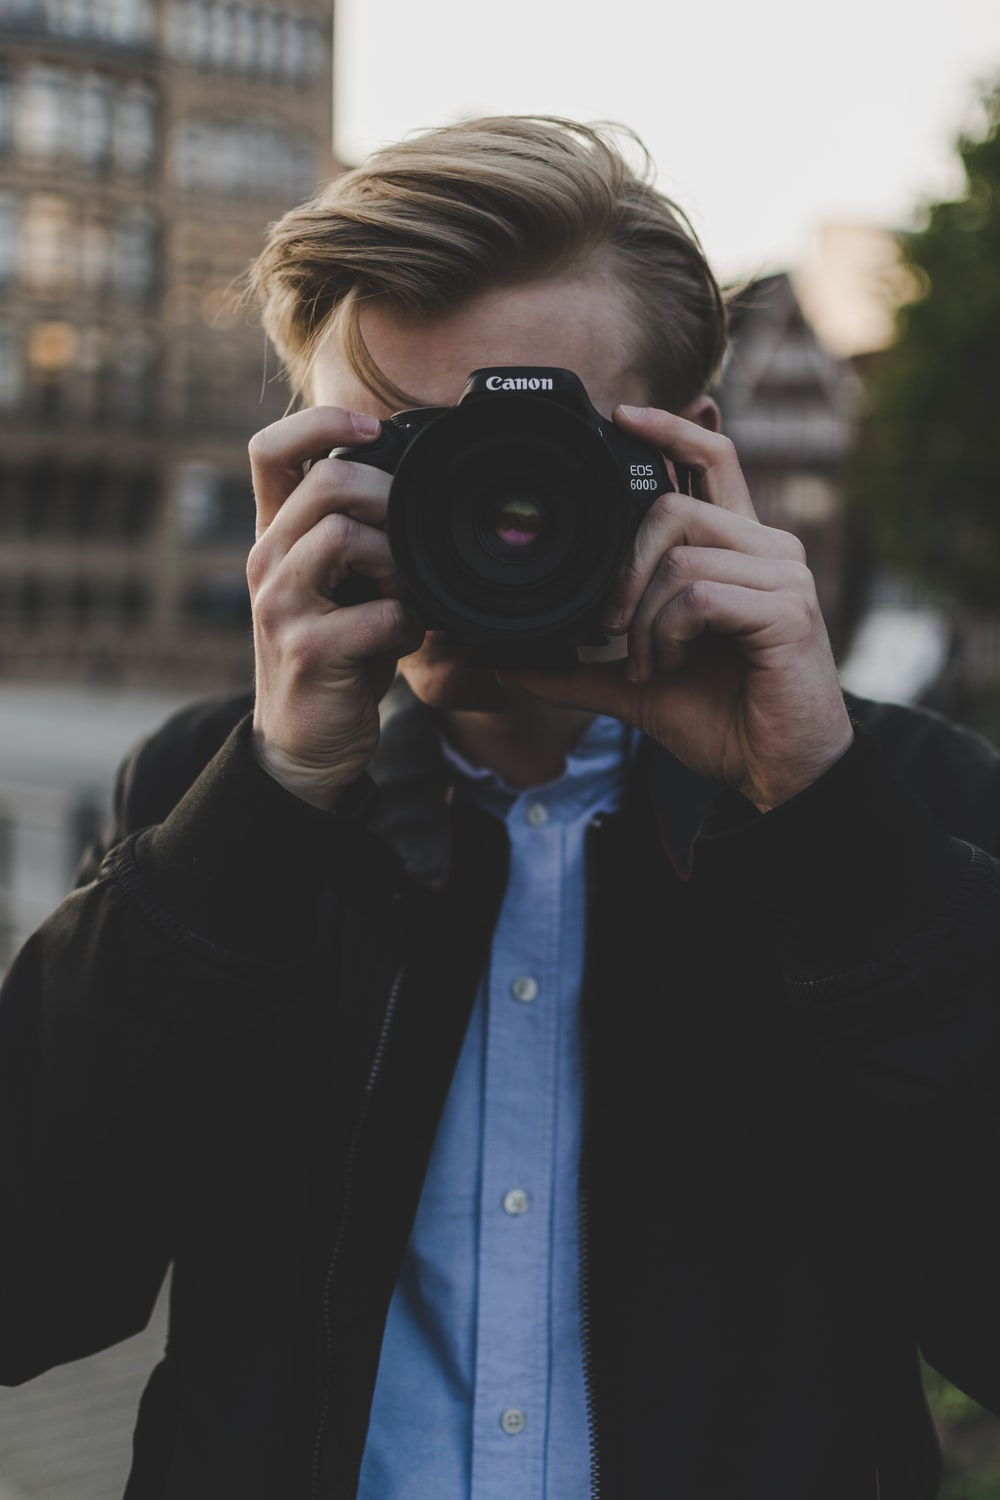 man using black Canon EOS camera during day time